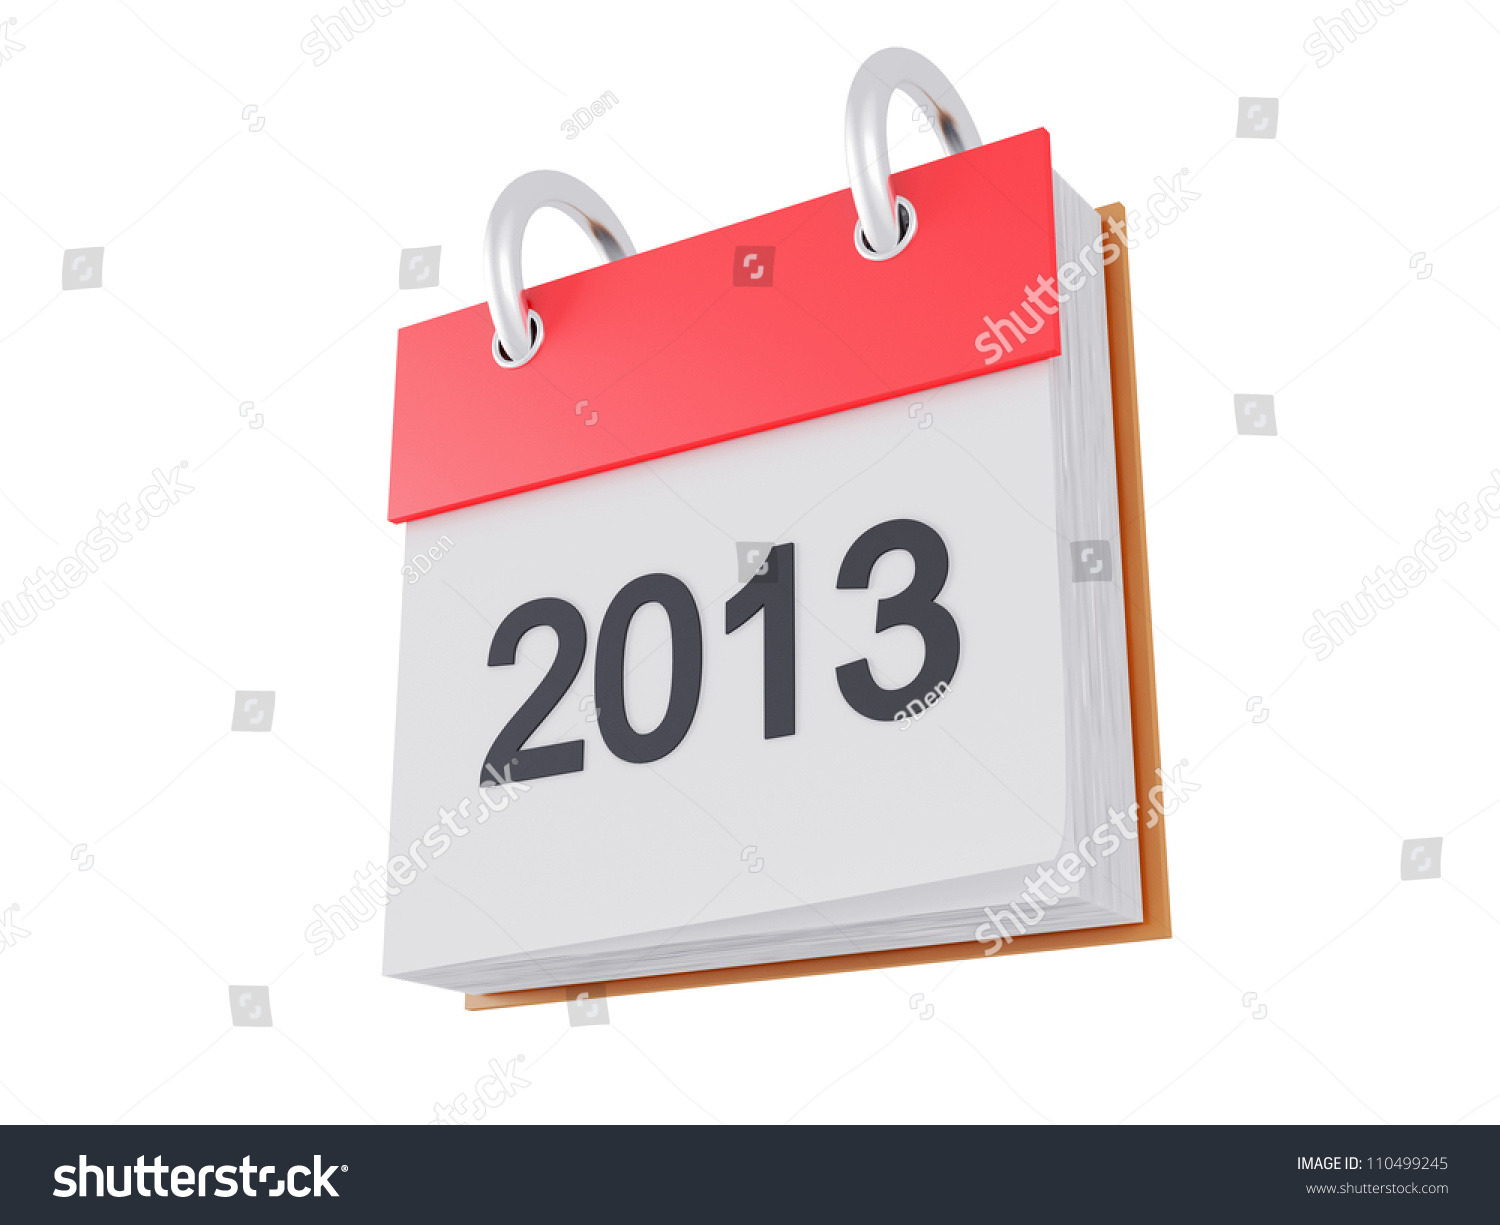 Red Calendar 2013 Icon 3d Render Isolated On White